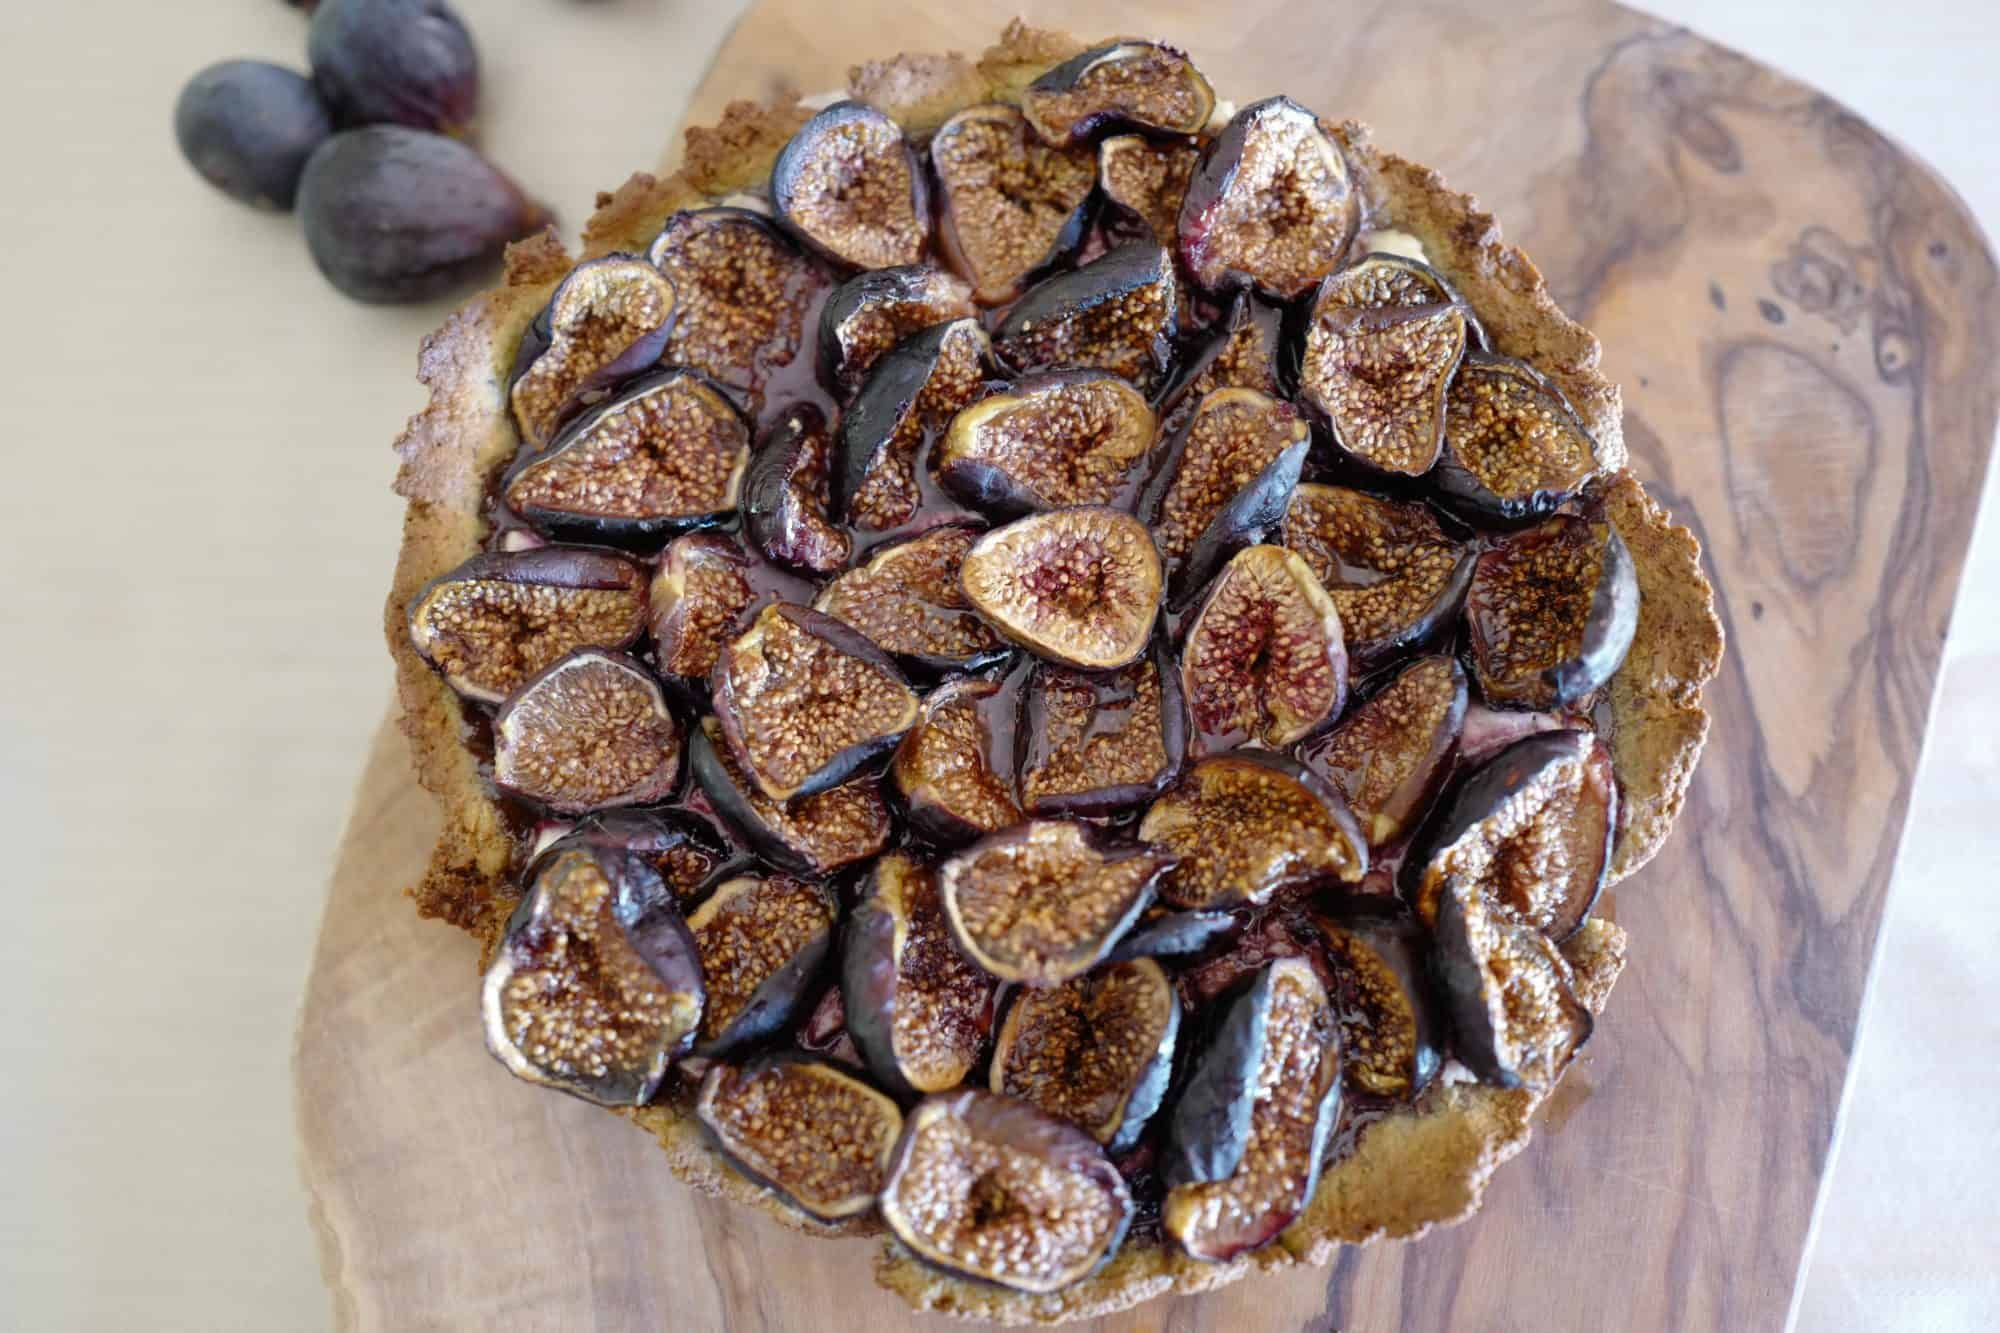 Top down view of Paleo Fig Tart (sugar-free, nutrient-dense) with goat cheese and almond-pistachio crust by Foodjoya